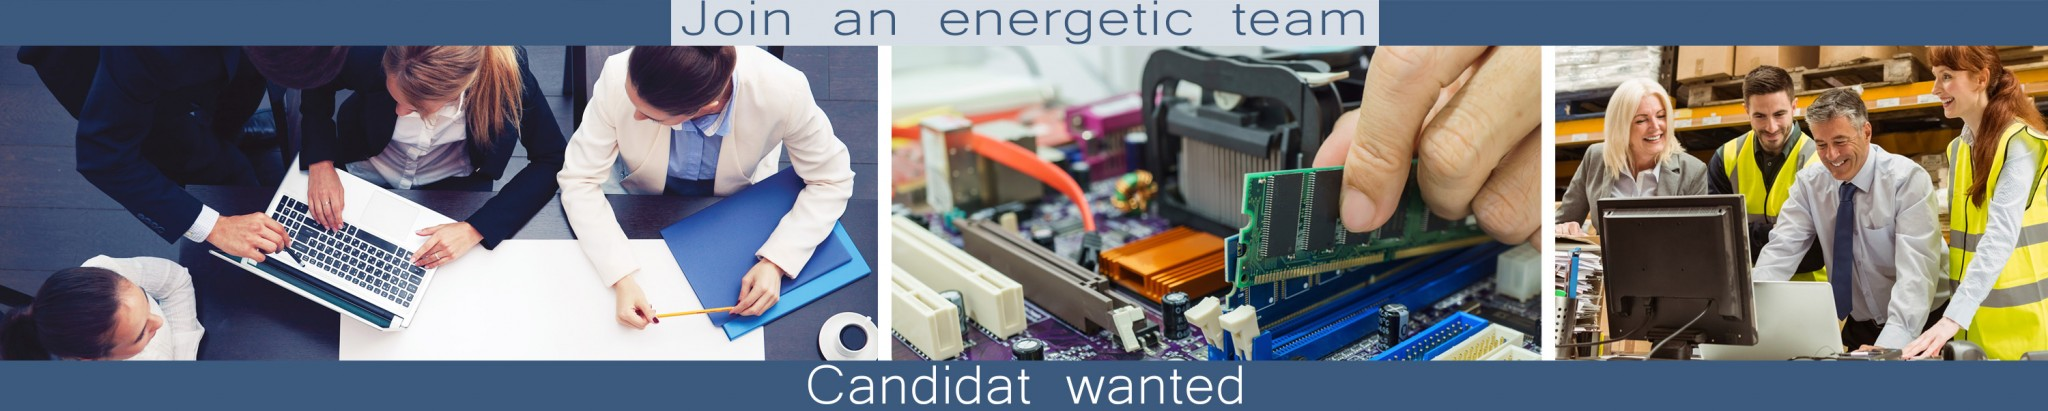 job-candidate-wanted-en